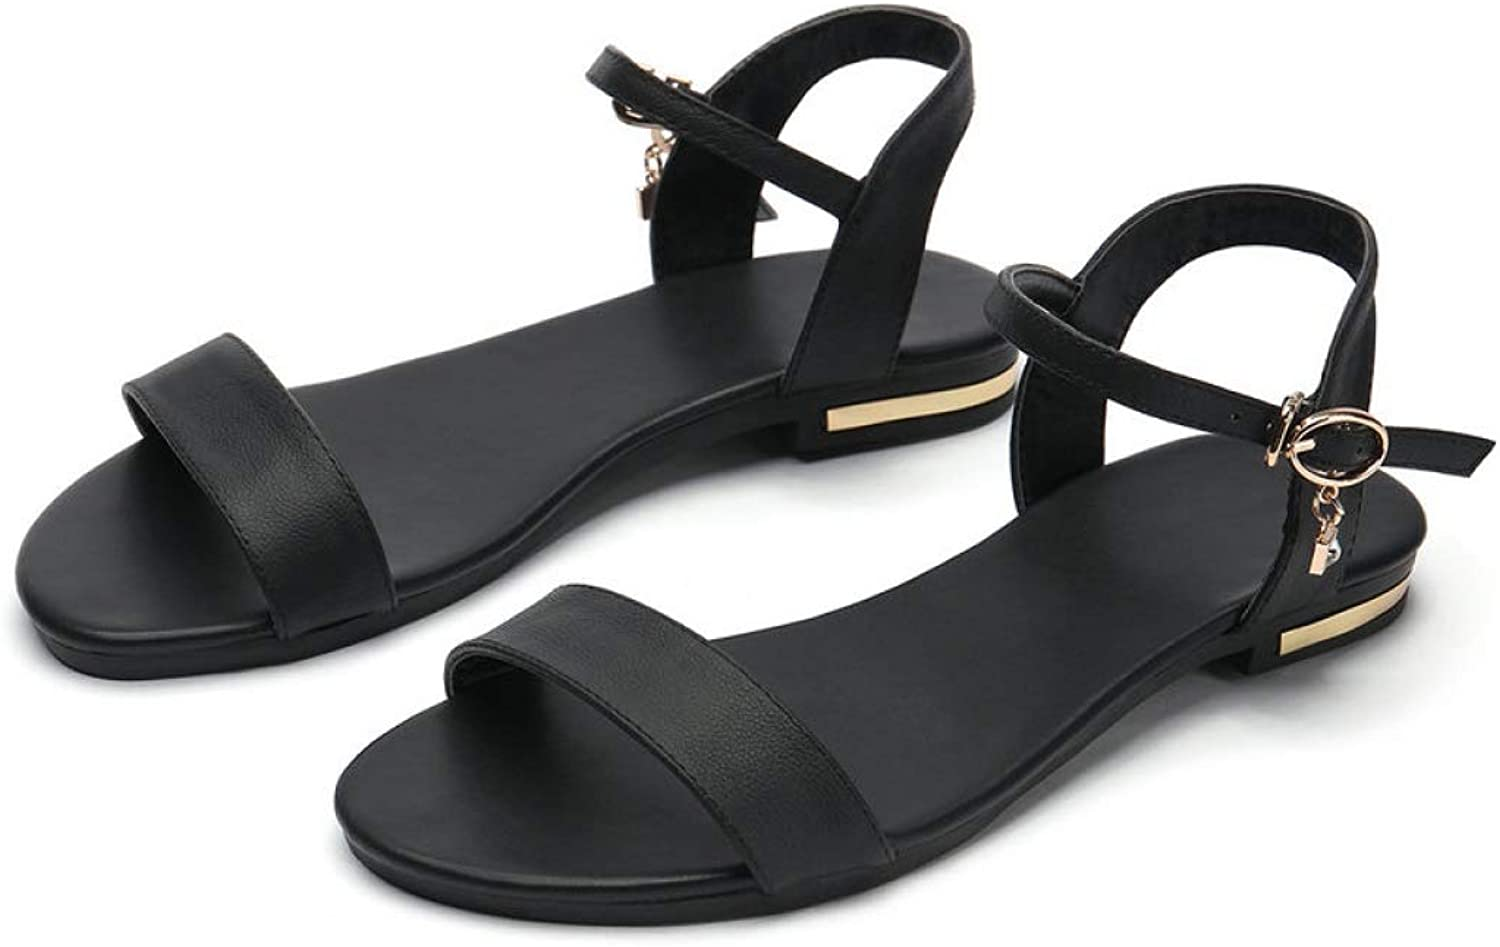 Women's Sandal Open Toe Cow Leather Low Heel Summer Ladies Fashion Breathable Casual shoes